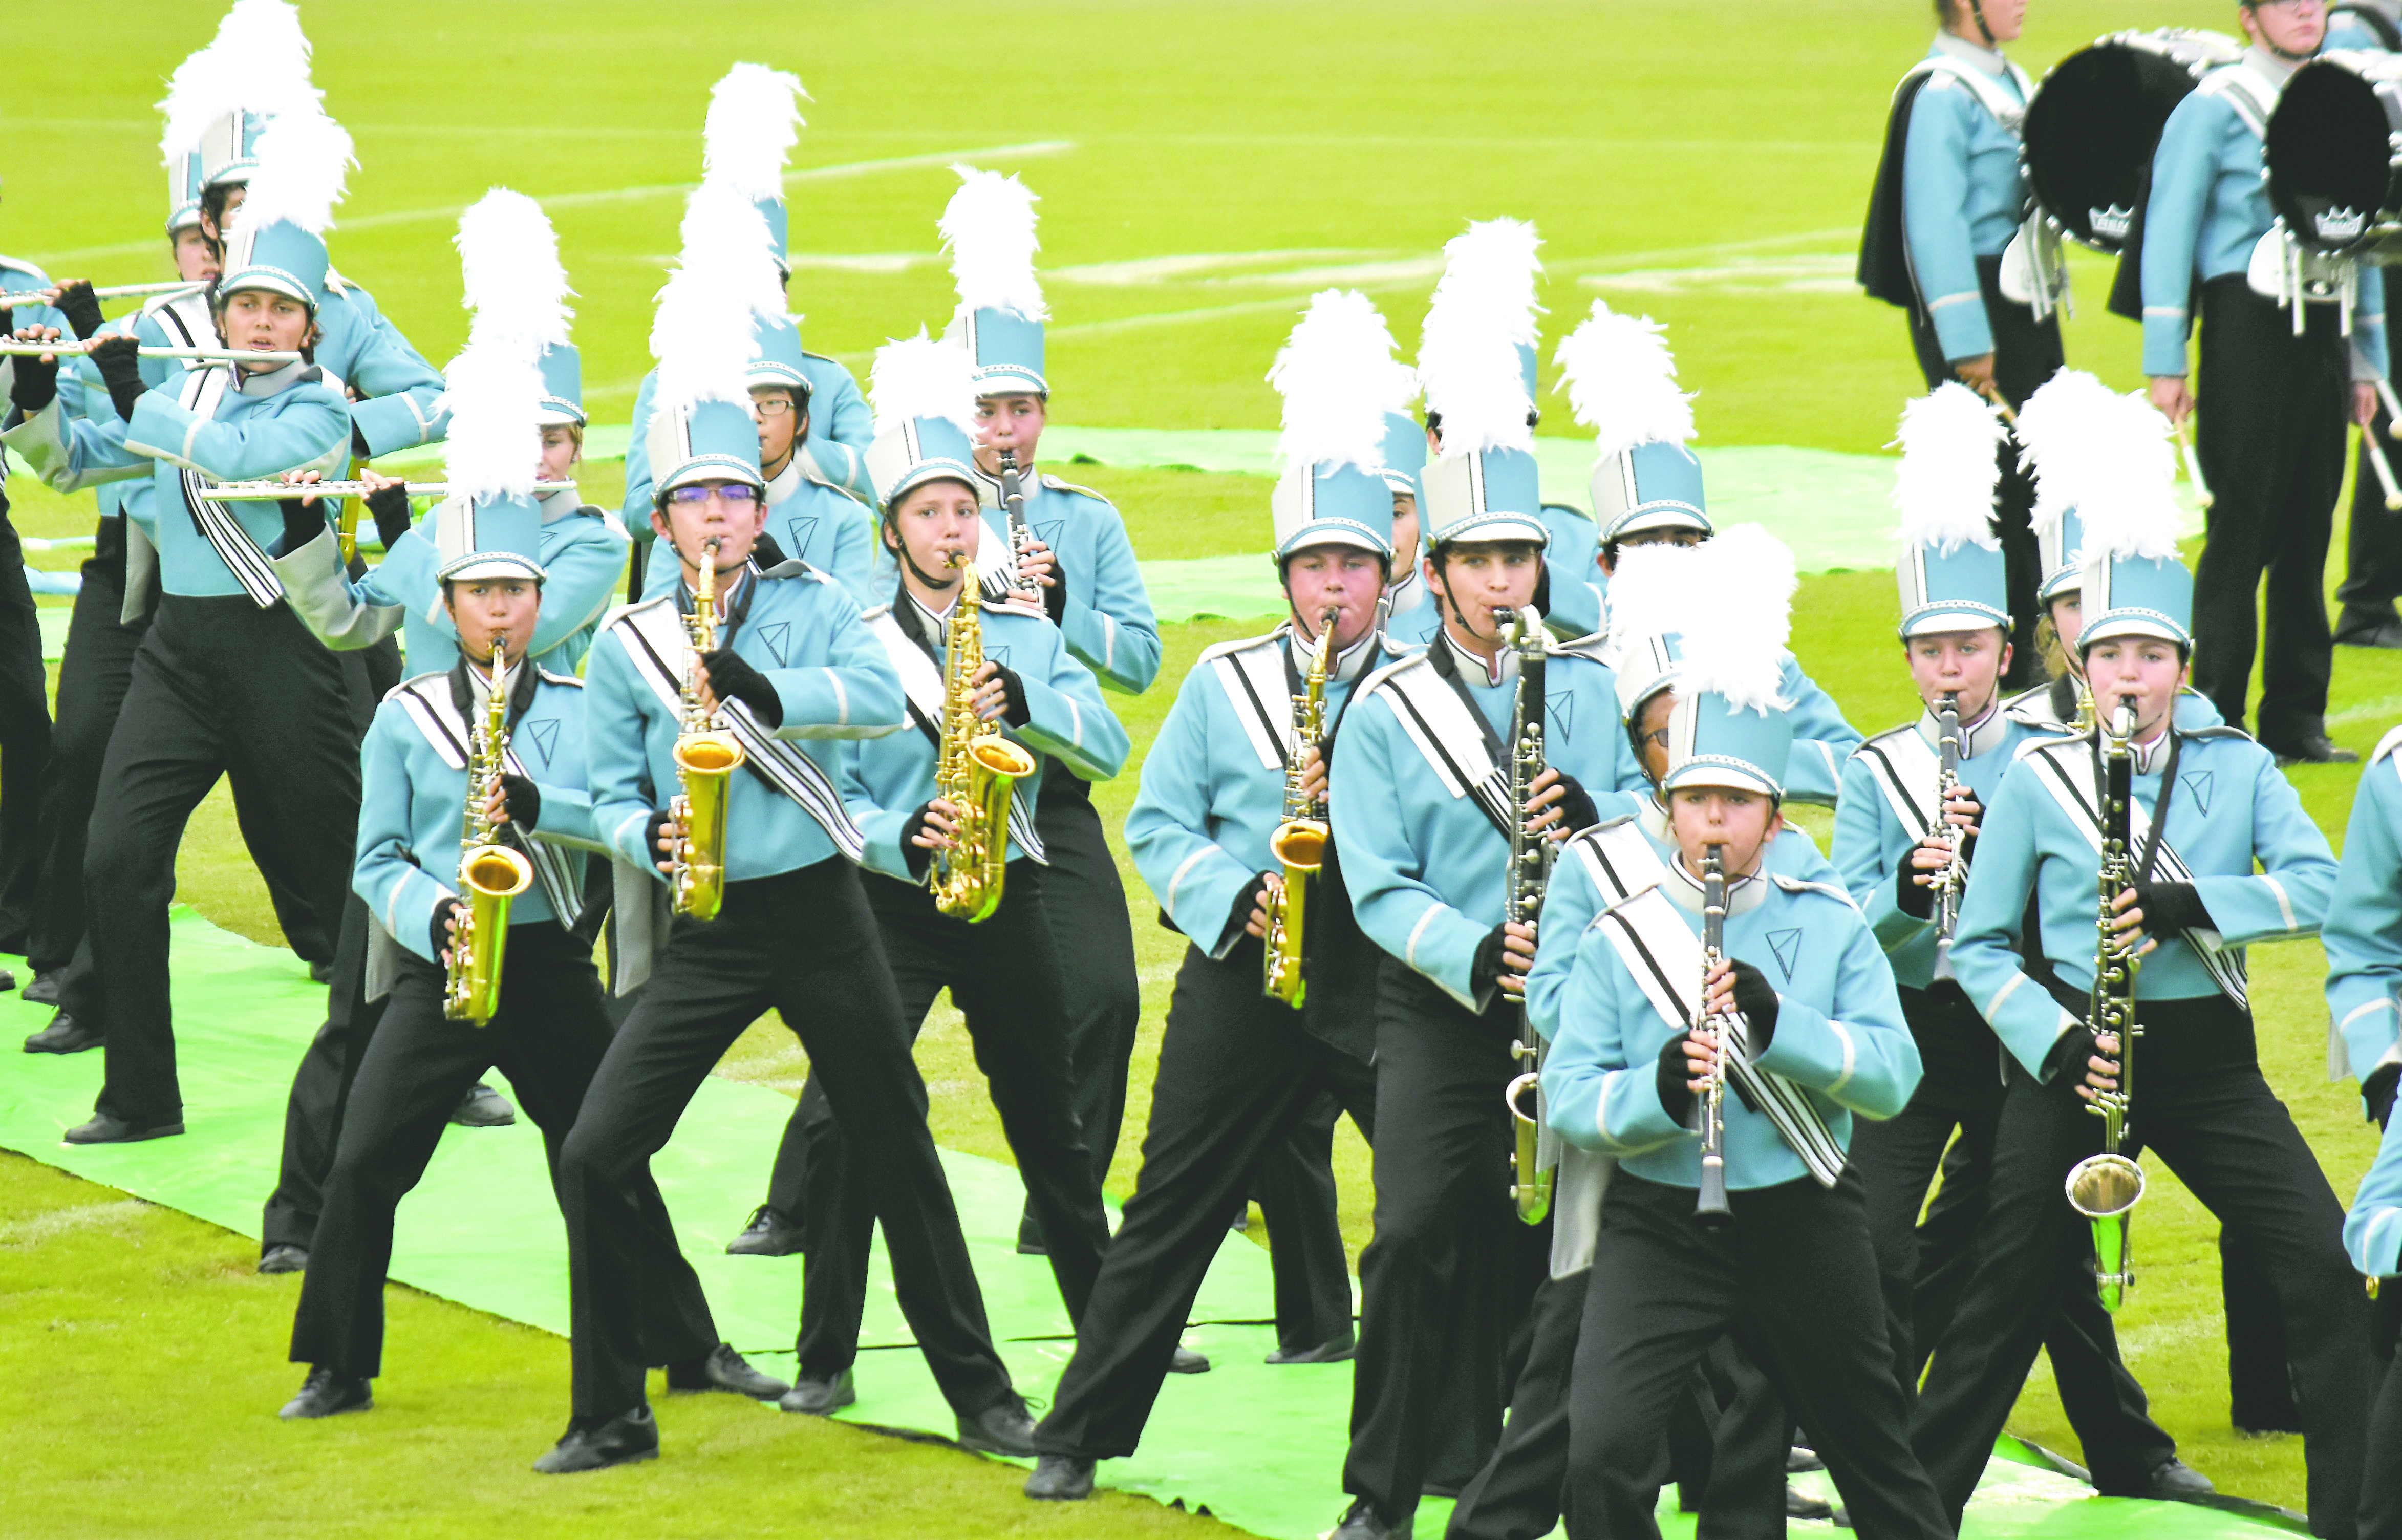 pvn-pvhs-band-competitions-1712a